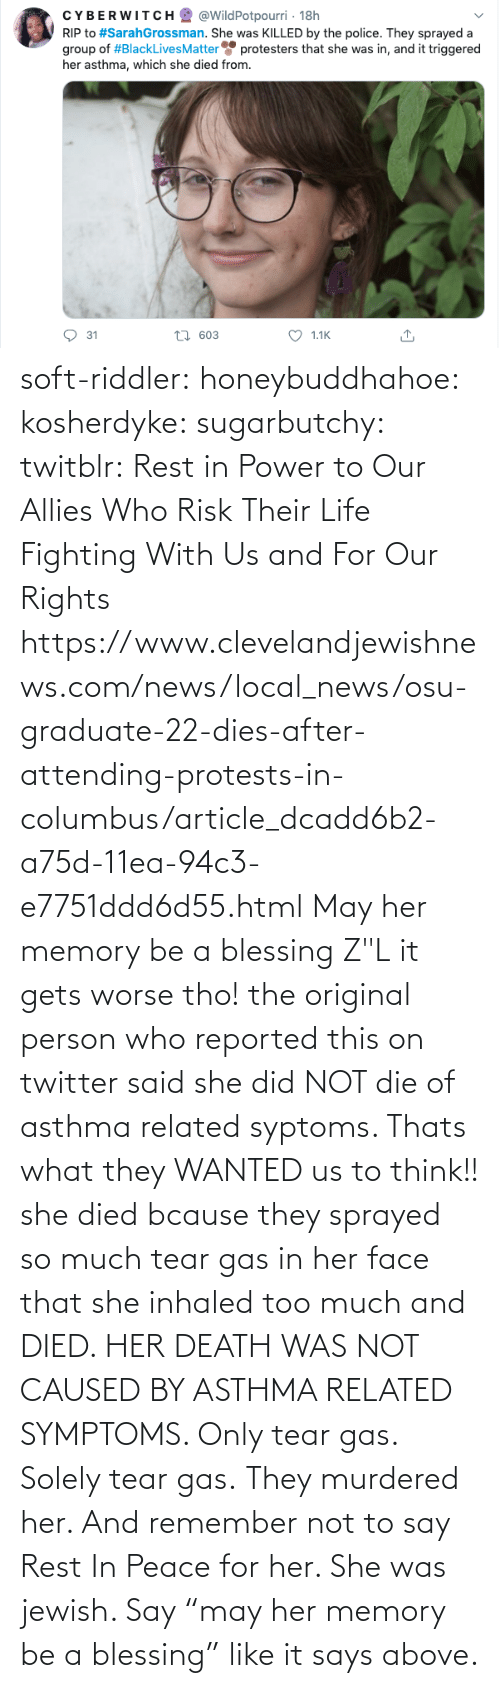 "think: soft-riddler:  honeybuddhahoe:  kosherdyke:  sugarbutchy:  twitblr: Rest in Power to Our Allies Who Risk Their Life Fighting With Us and For Our Rights https://www.clevelandjewishnews.com/news/local_news/osu-graduate-22-dies-after-attending-protests-in-columbus/article_dcadd6b2-a75d-11ea-94c3-e7751ddd6d55.html    May her memory be a blessing Z""L  it gets worse tho! the original person who reported this on twitter said she did NOT die of asthma related syptoms. Thats what they WANTED us to think!! she died bcause they sprayed so much tear gas in her face that she inhaled too much and DIED. HER DEATH WAS NOT CAUSED BY ASTHMA RELATED SYMPTOMS. Only tear gas. Solely tear gas. They murdered her.     And remember not to say Rest In Peace for her. She was jewish. Say ""may her memory be a blessing"" like it says above."